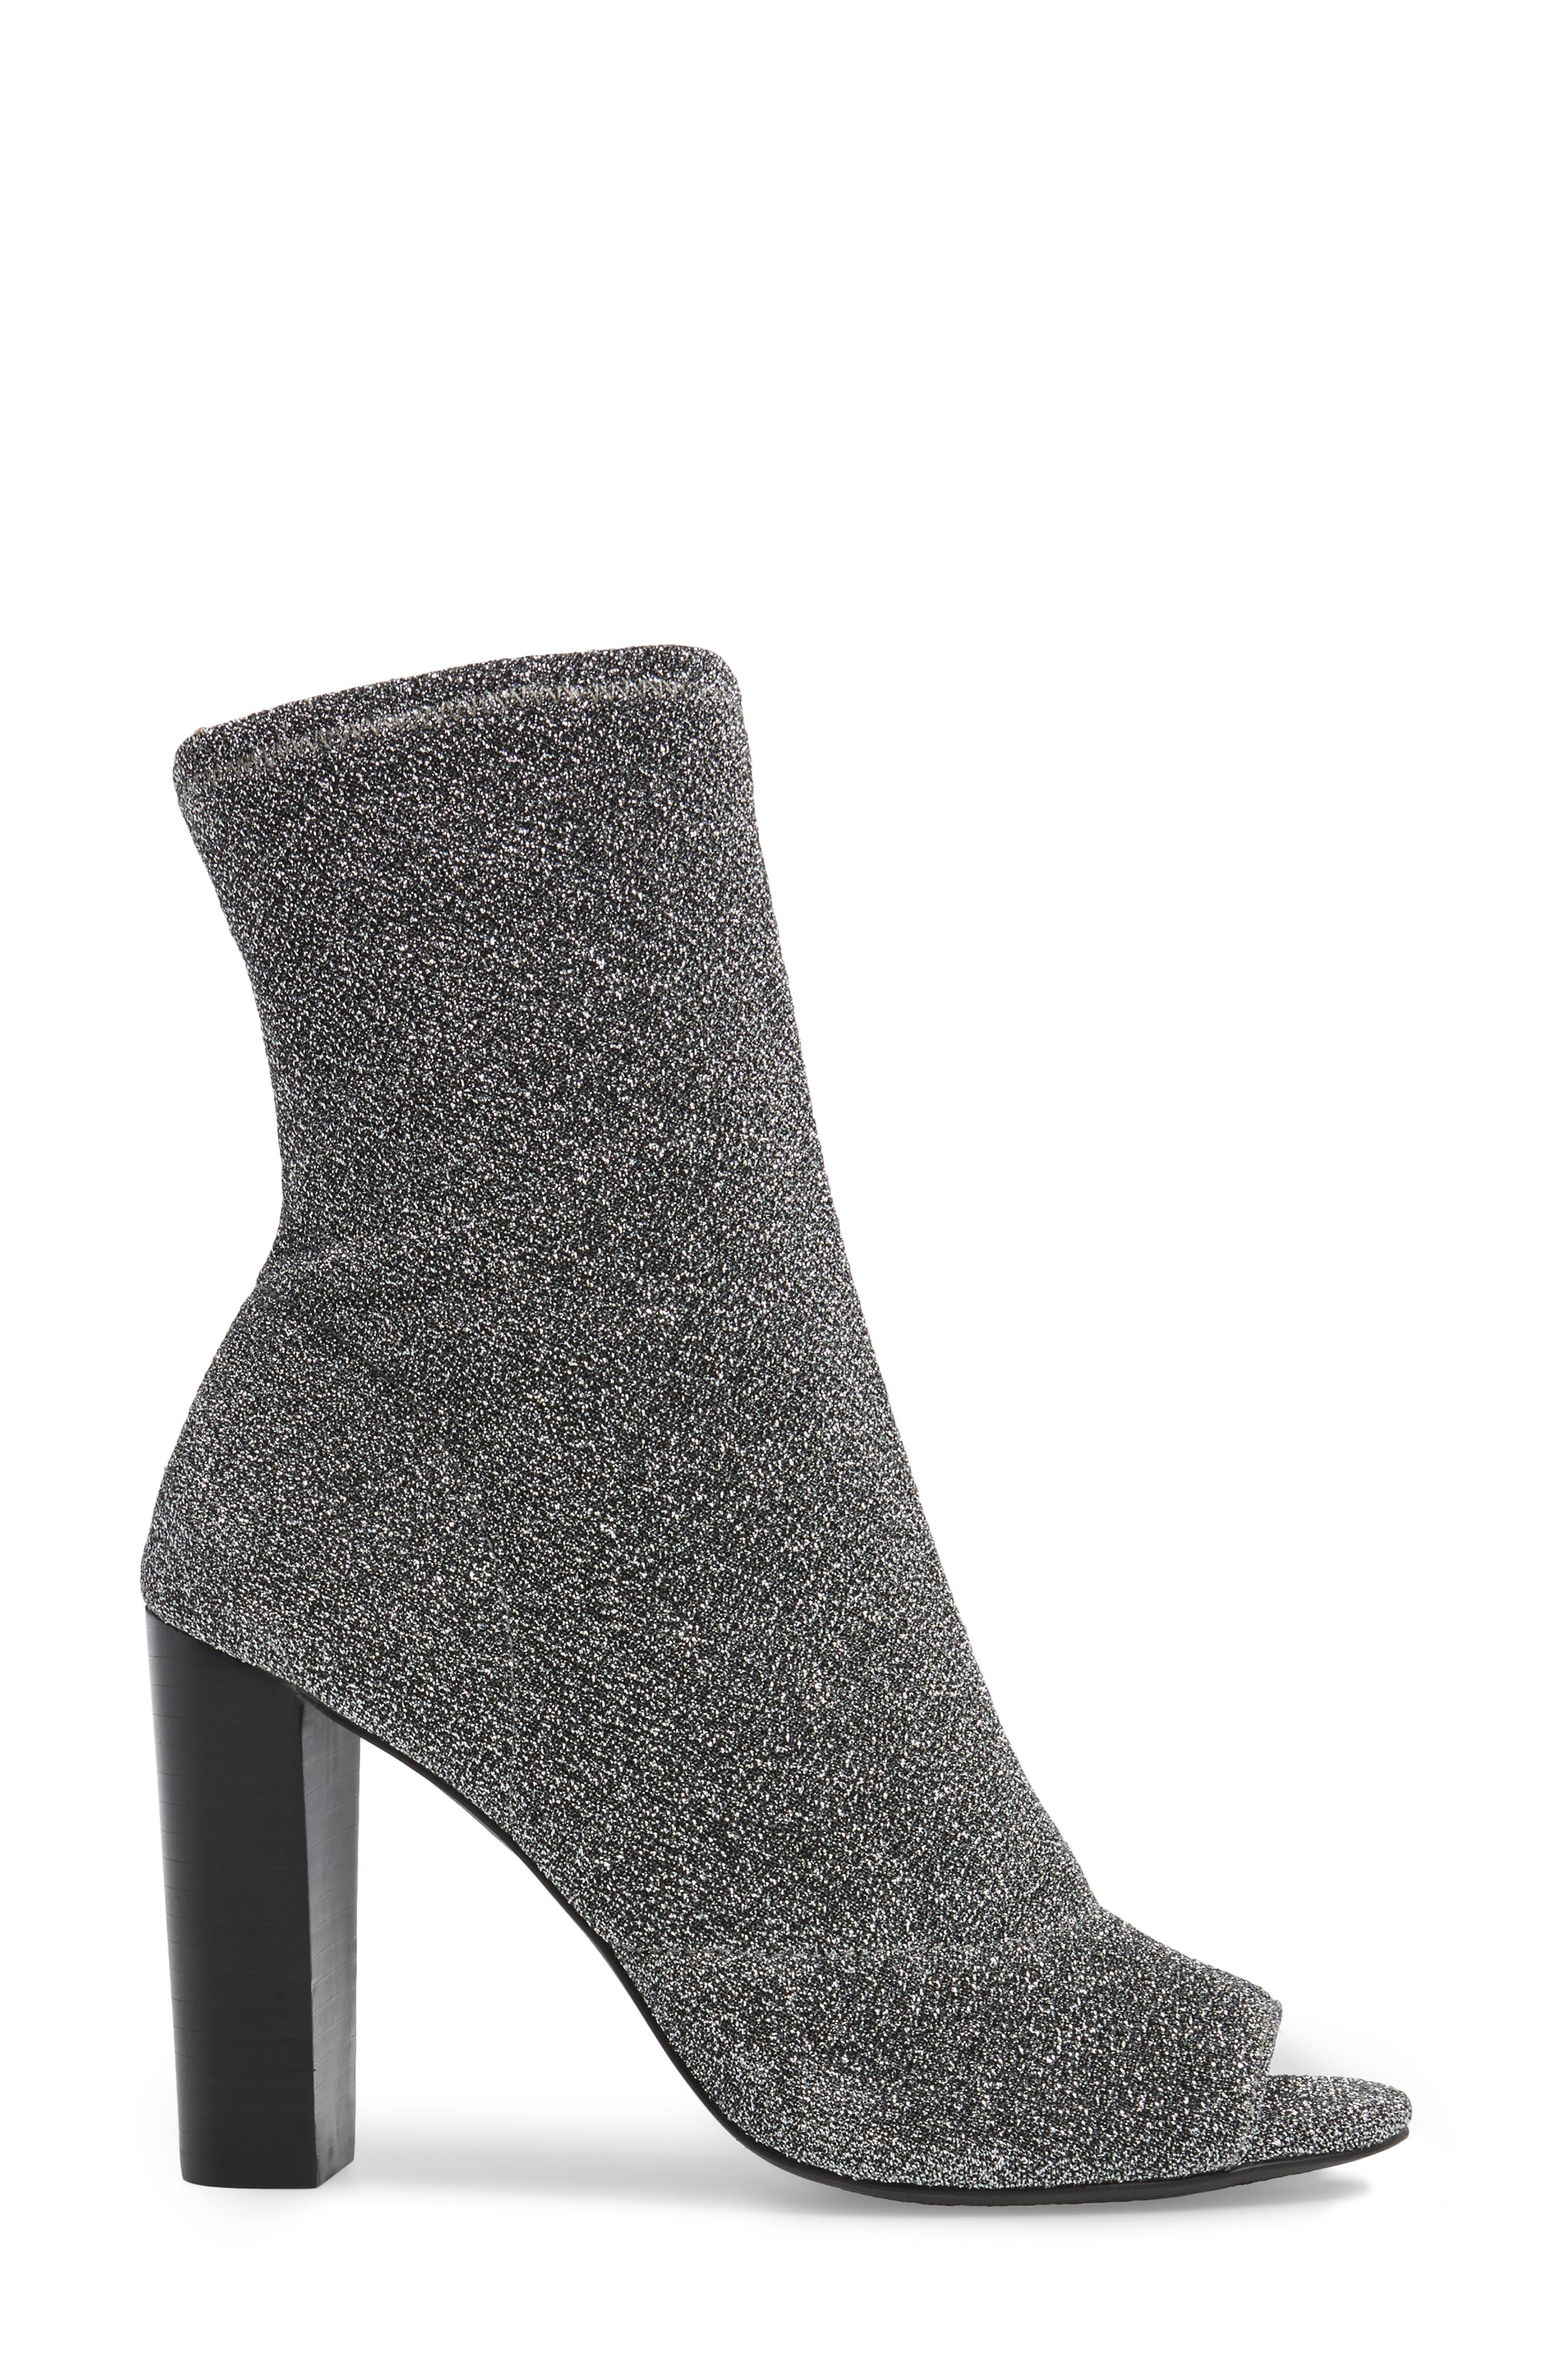 Elara Open-Toe Bootie,                             Alternate thumbnail 3, color,                             Gunmetal